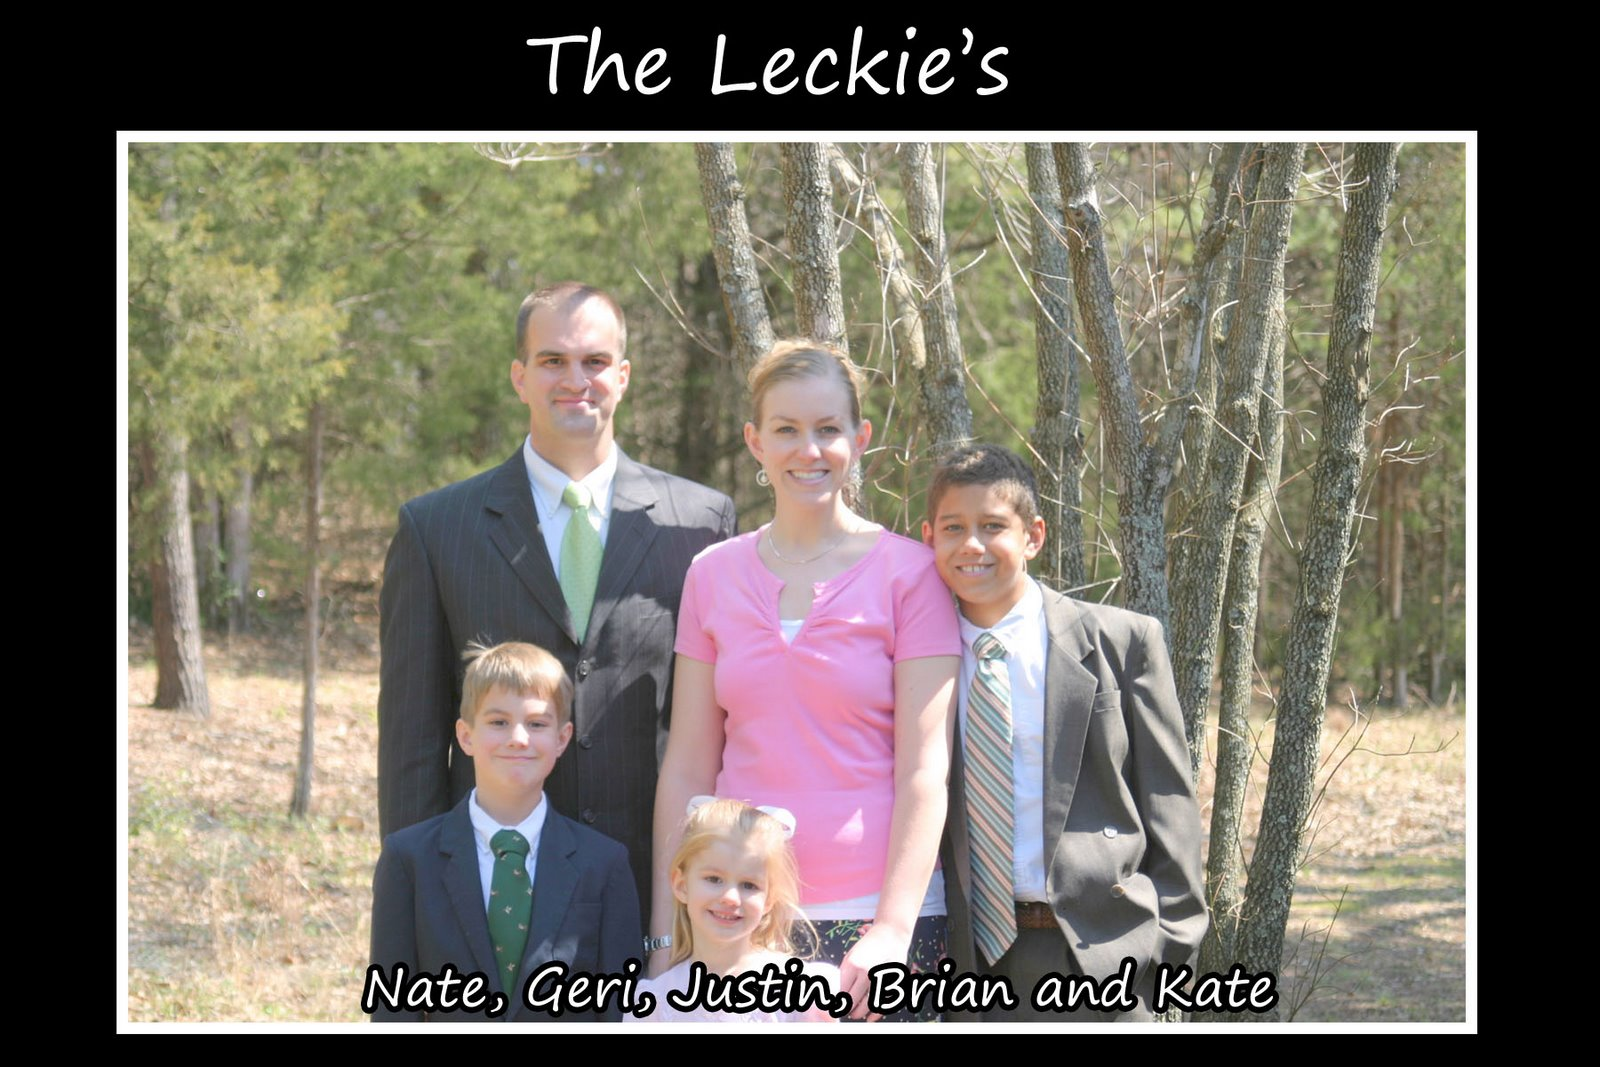 The Leckies